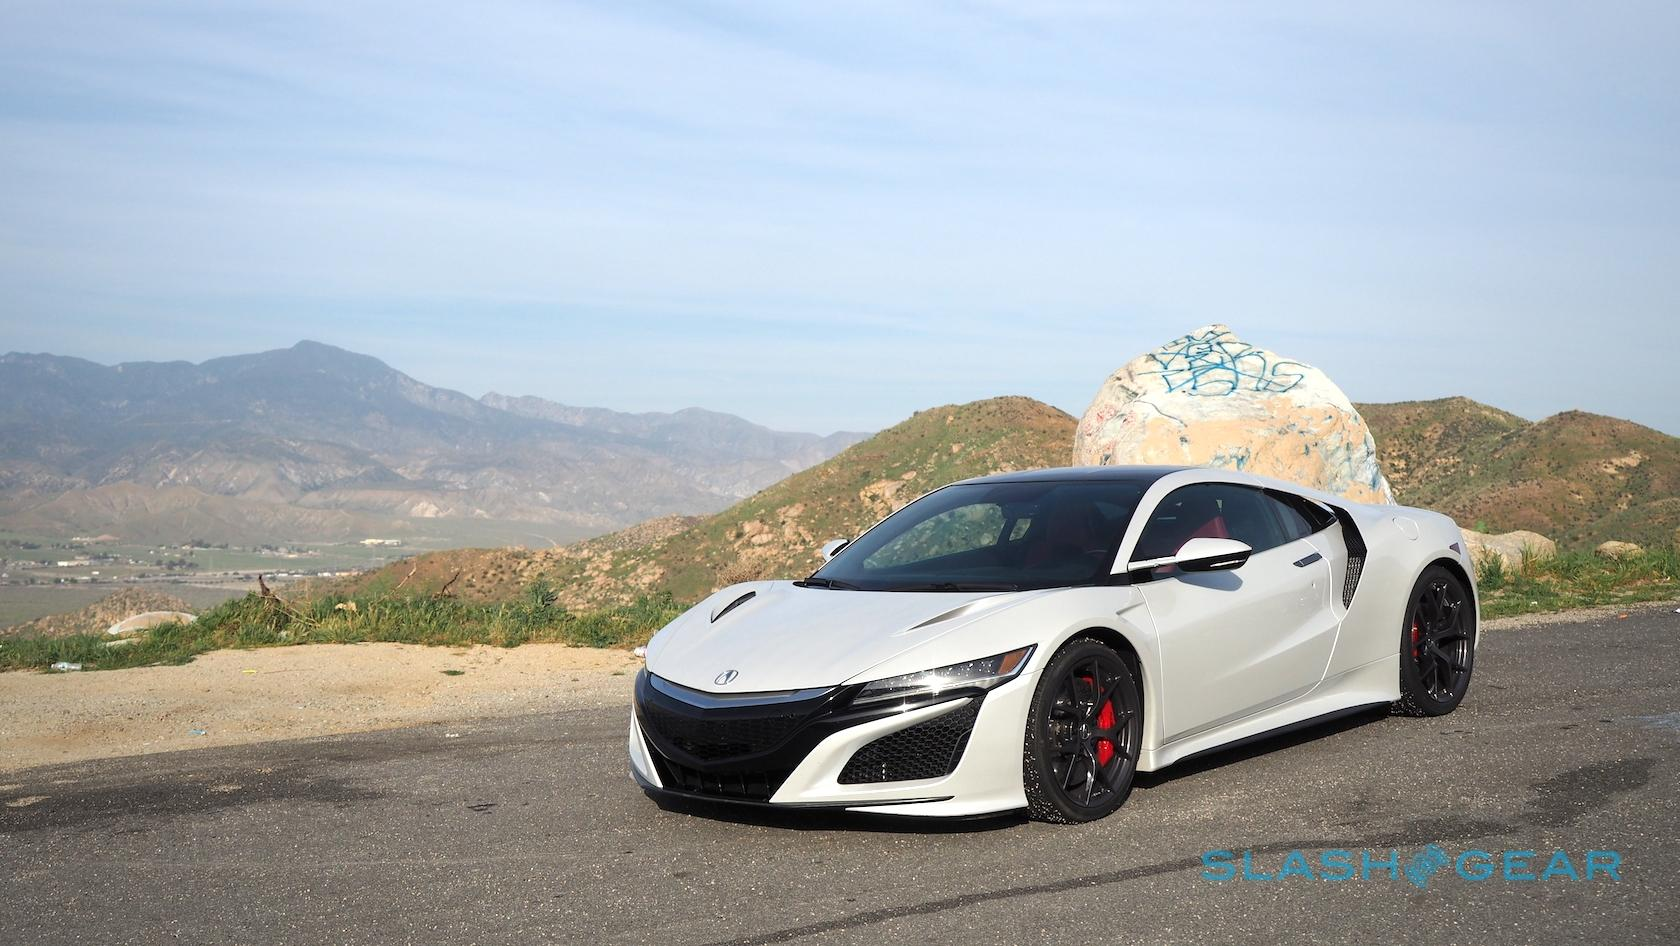 acura-nsx-first-drive-32